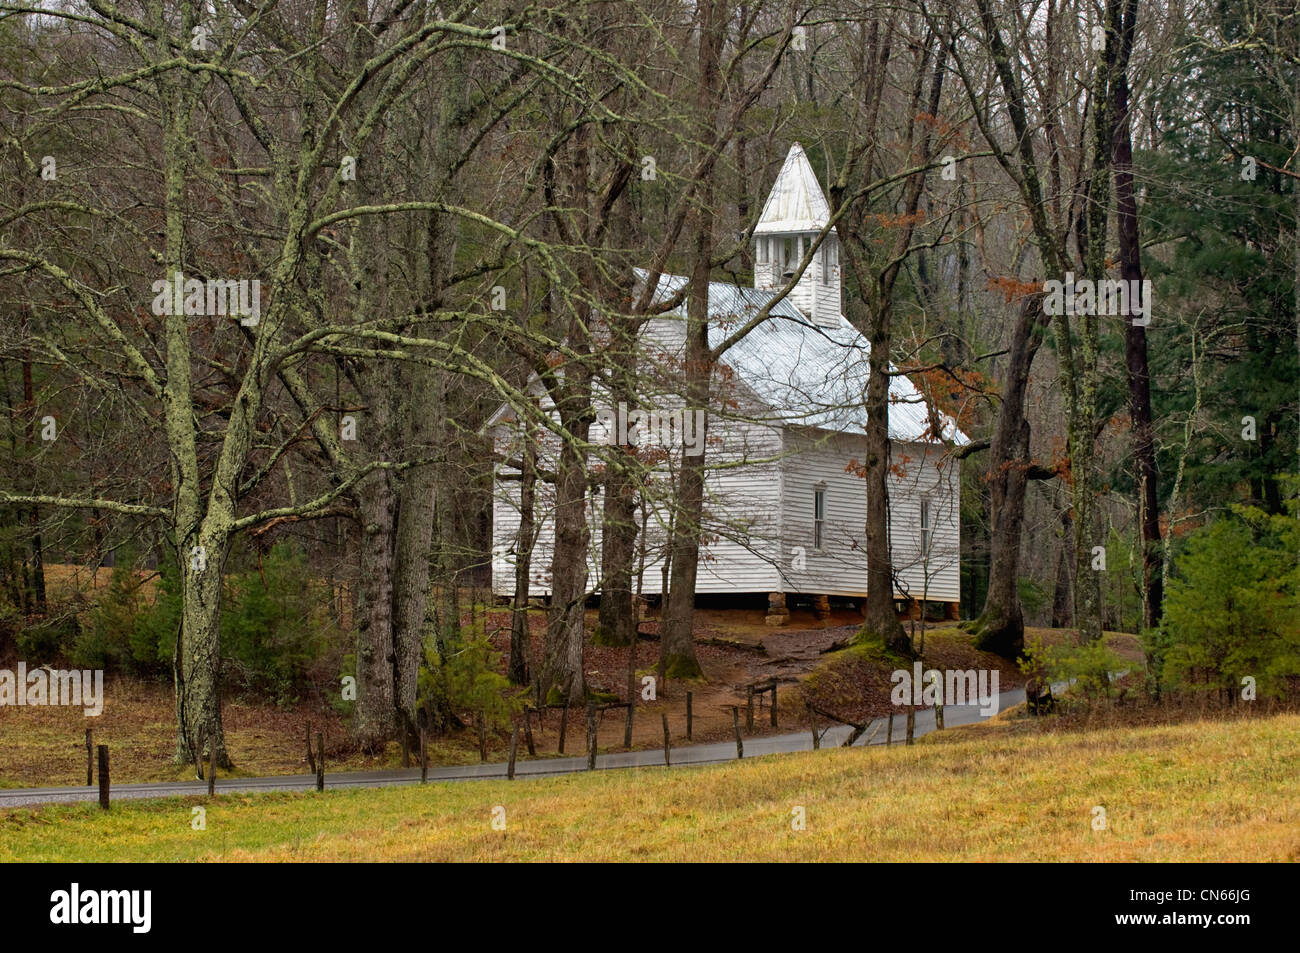 Cades Cove Methodist Church in the Great Smoky Mountains National Park in Tennessee - Stock Image